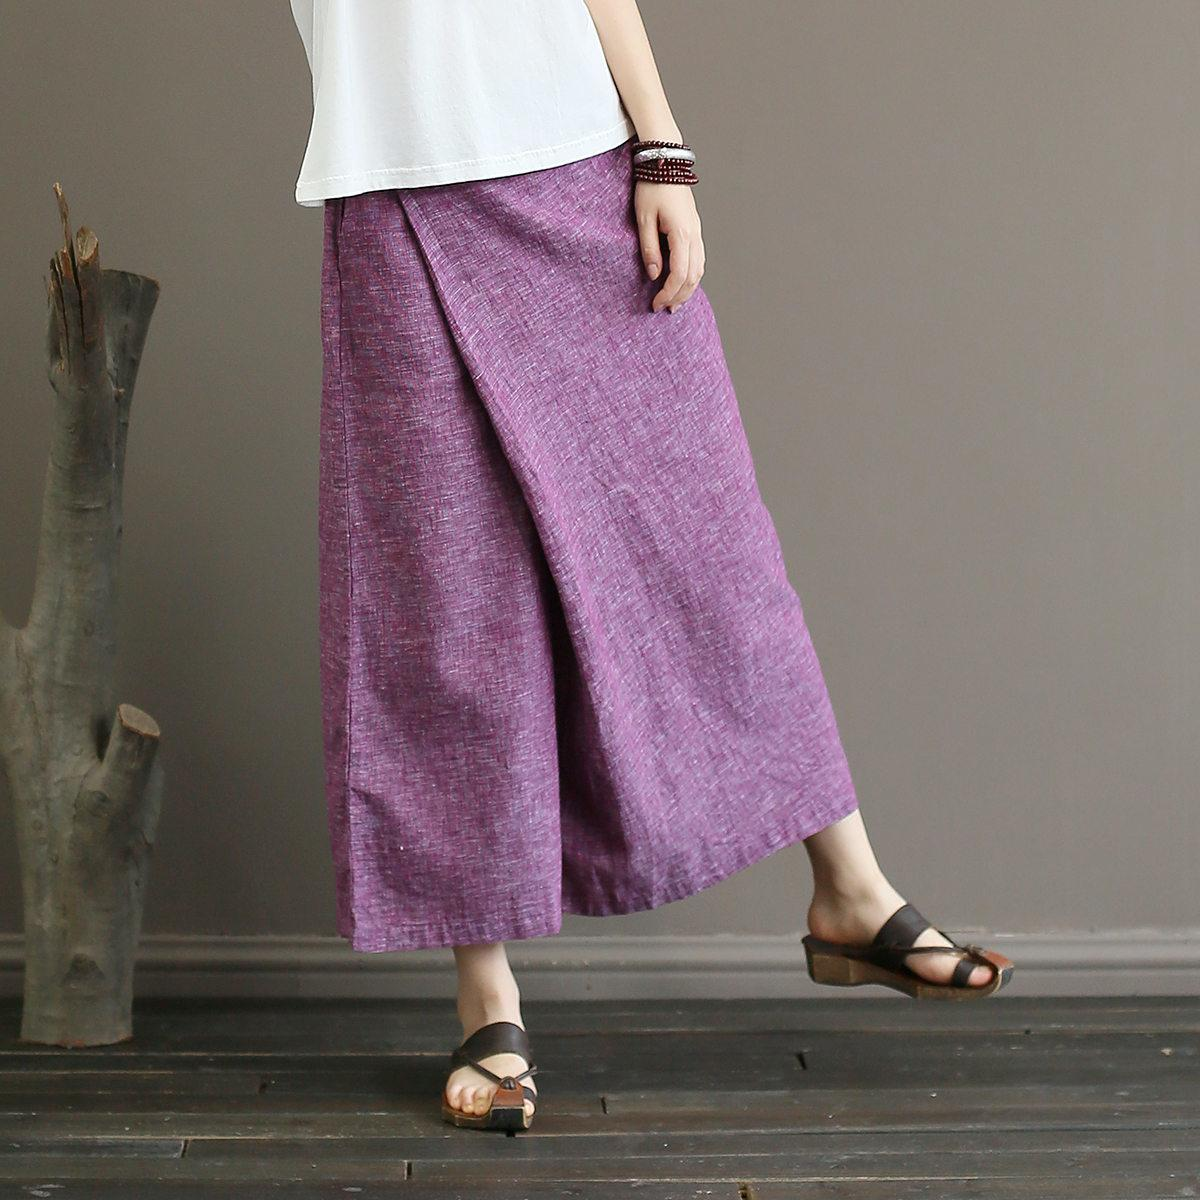 Johnature Solid Color Elastic Mid Waist New Skirt Pants 2019 New Summer Vintage Loose Cotton Linen Ankle-length Wide Leg Pants Y19071601